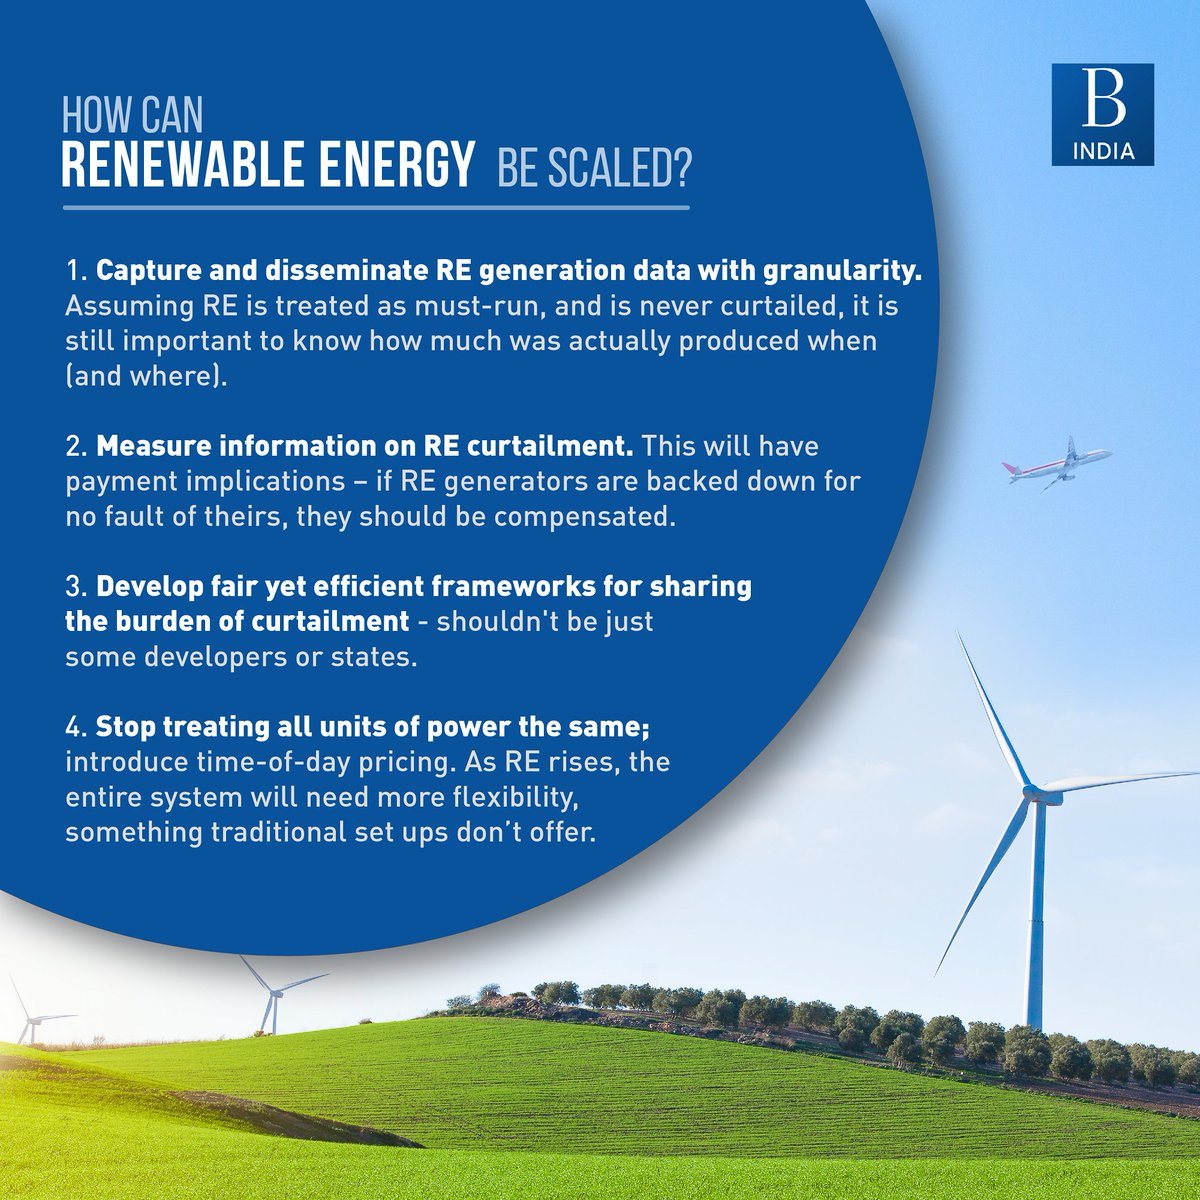 Brookings India On Twitter Drtongia Offers Steps For Scaling Green Blog Useful Windmill Power Systems Renewableenergy In Read The Entire Here Https Tco 0o9ux0mqtk